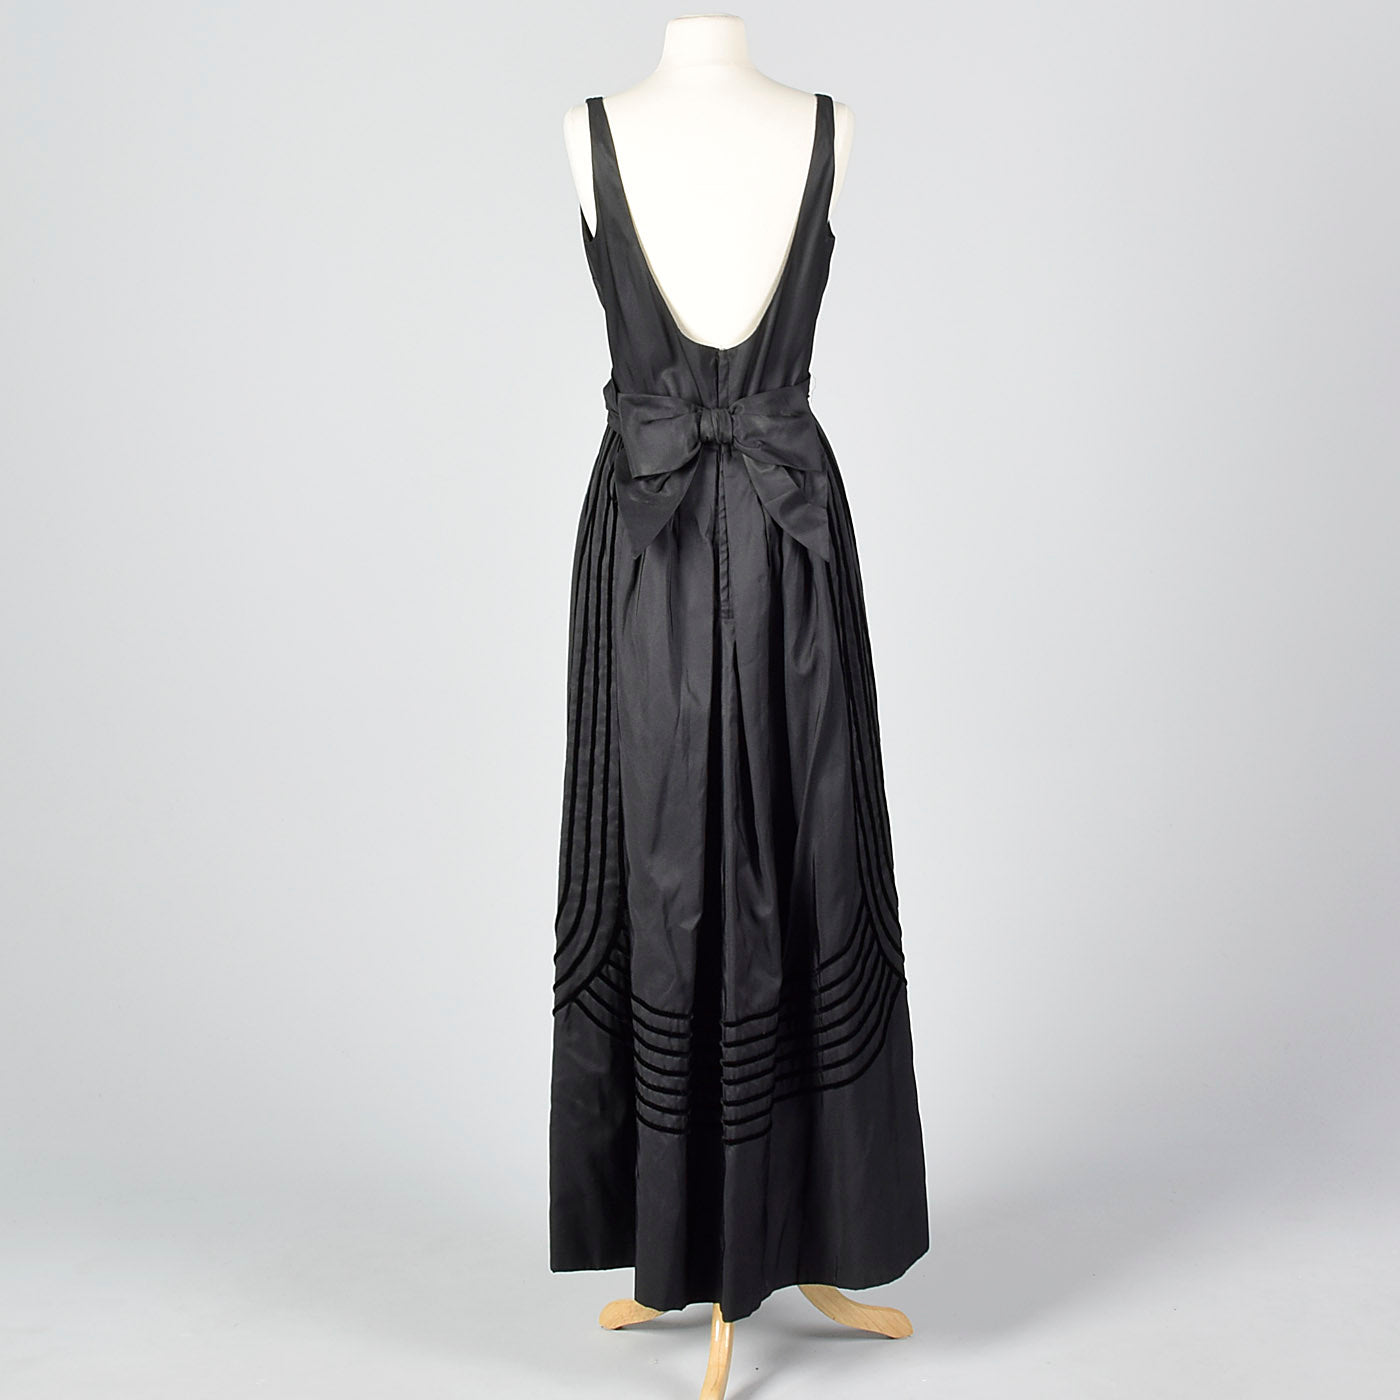 1950s Formal Black Maxi Dress with Stripe Trim